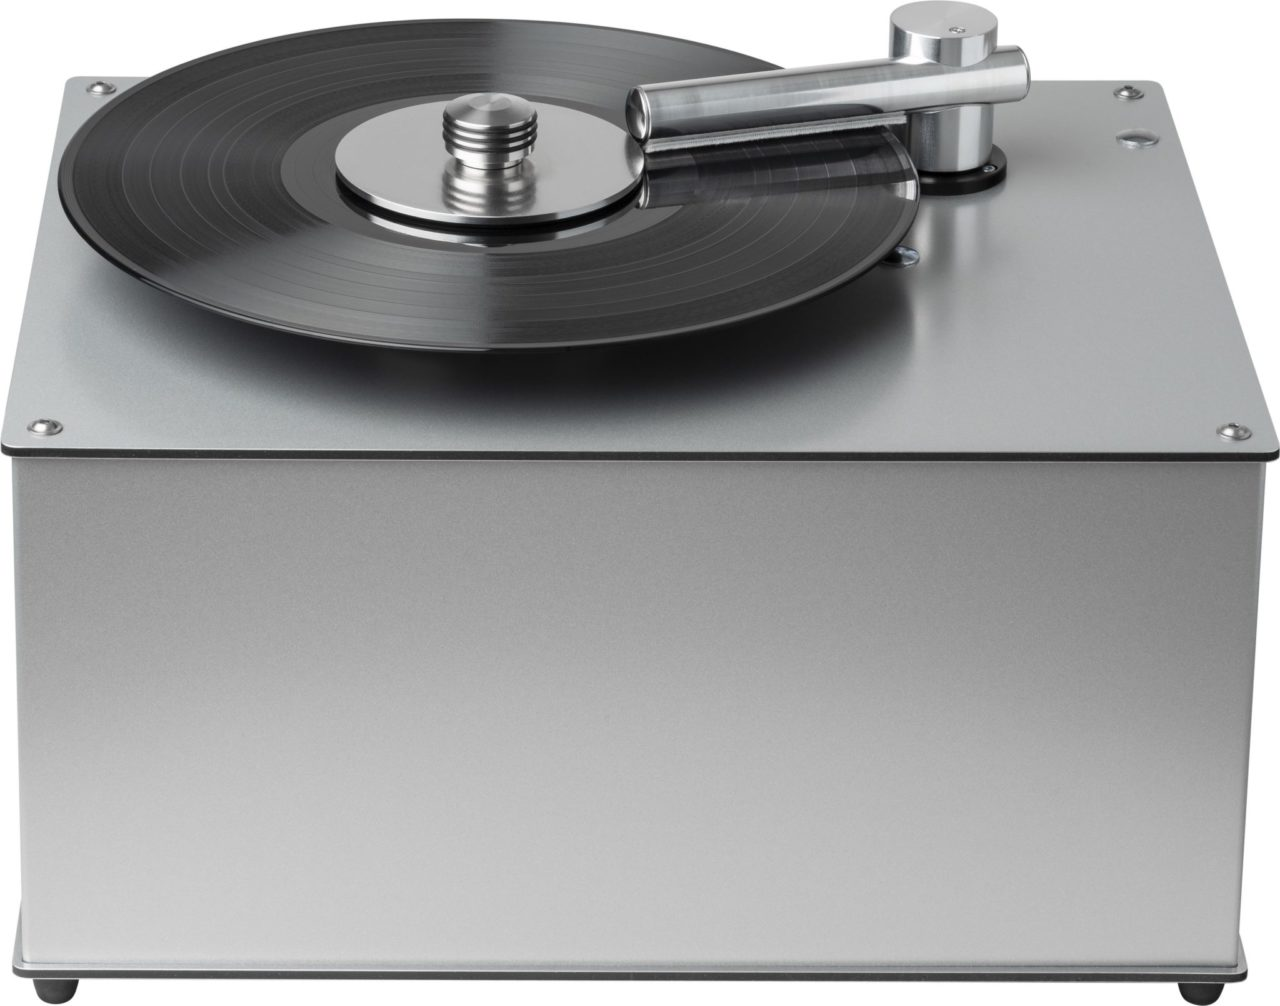 Pro-Ject unveils two new record-cleaning machines